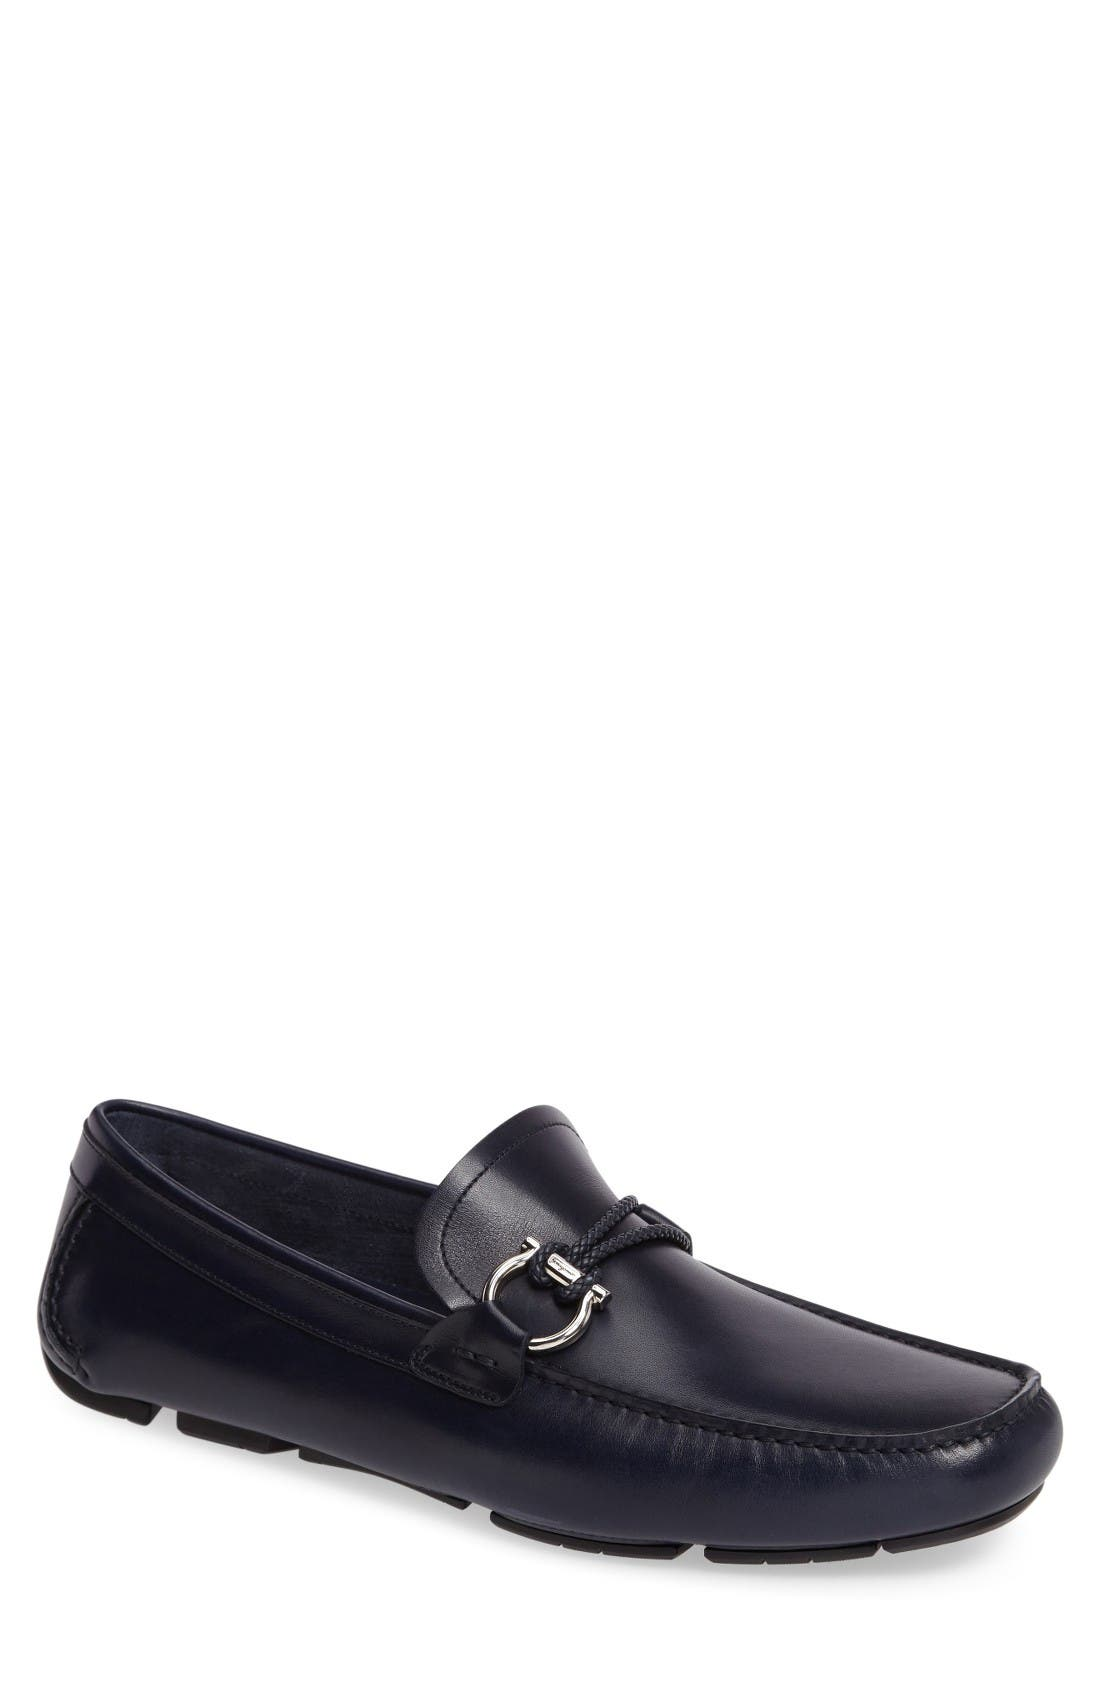 Main Image - Salvatore Ferragamo Front Braided Bit Driving Shoe (Men)